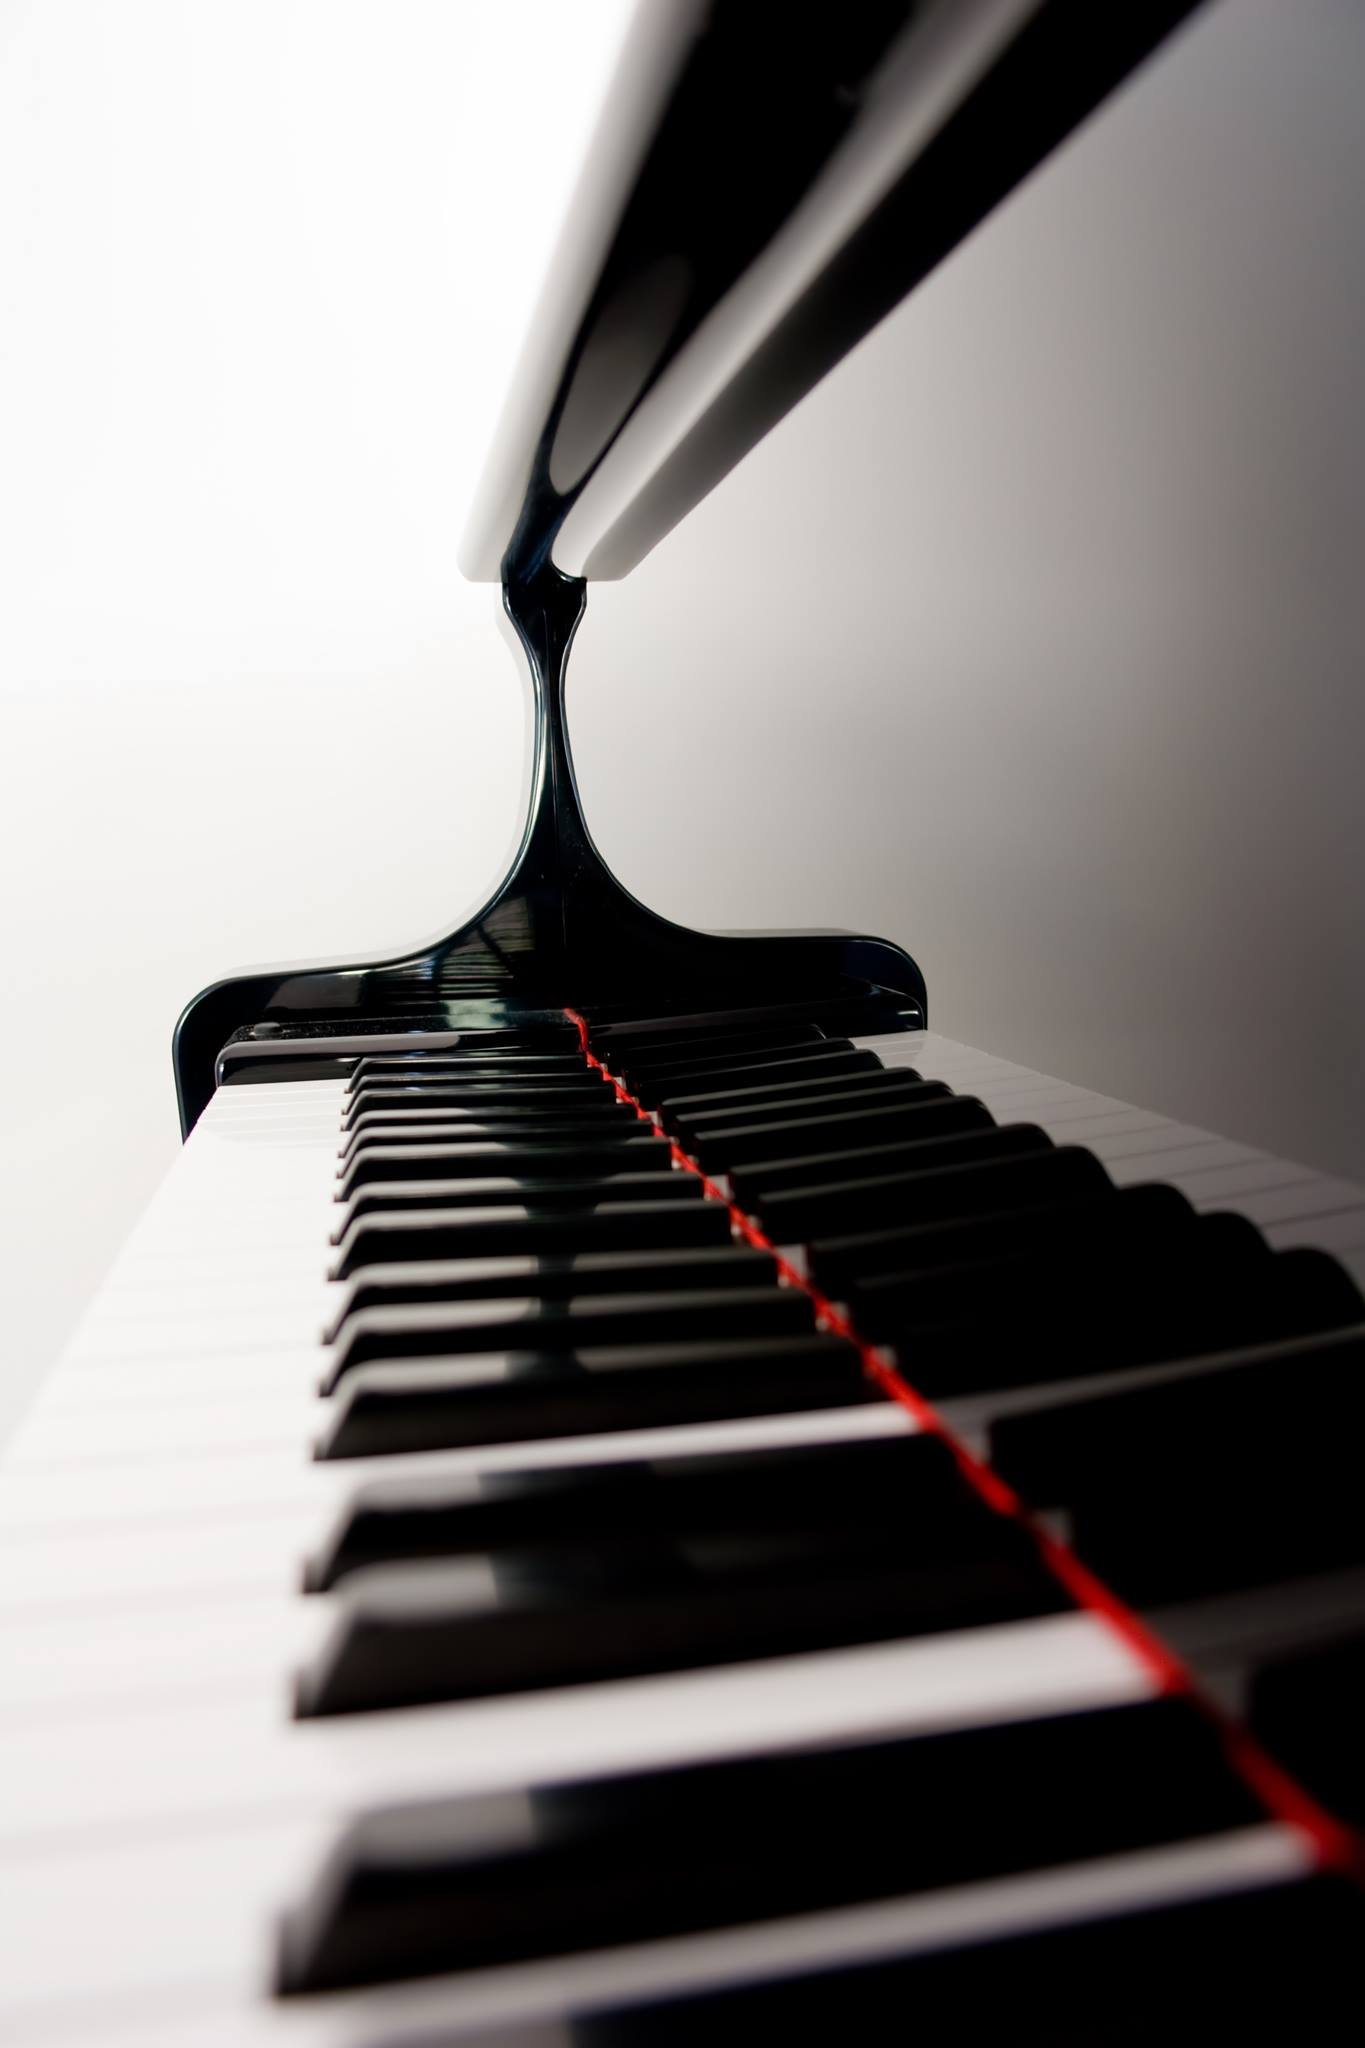 pianio hang photo.jpg